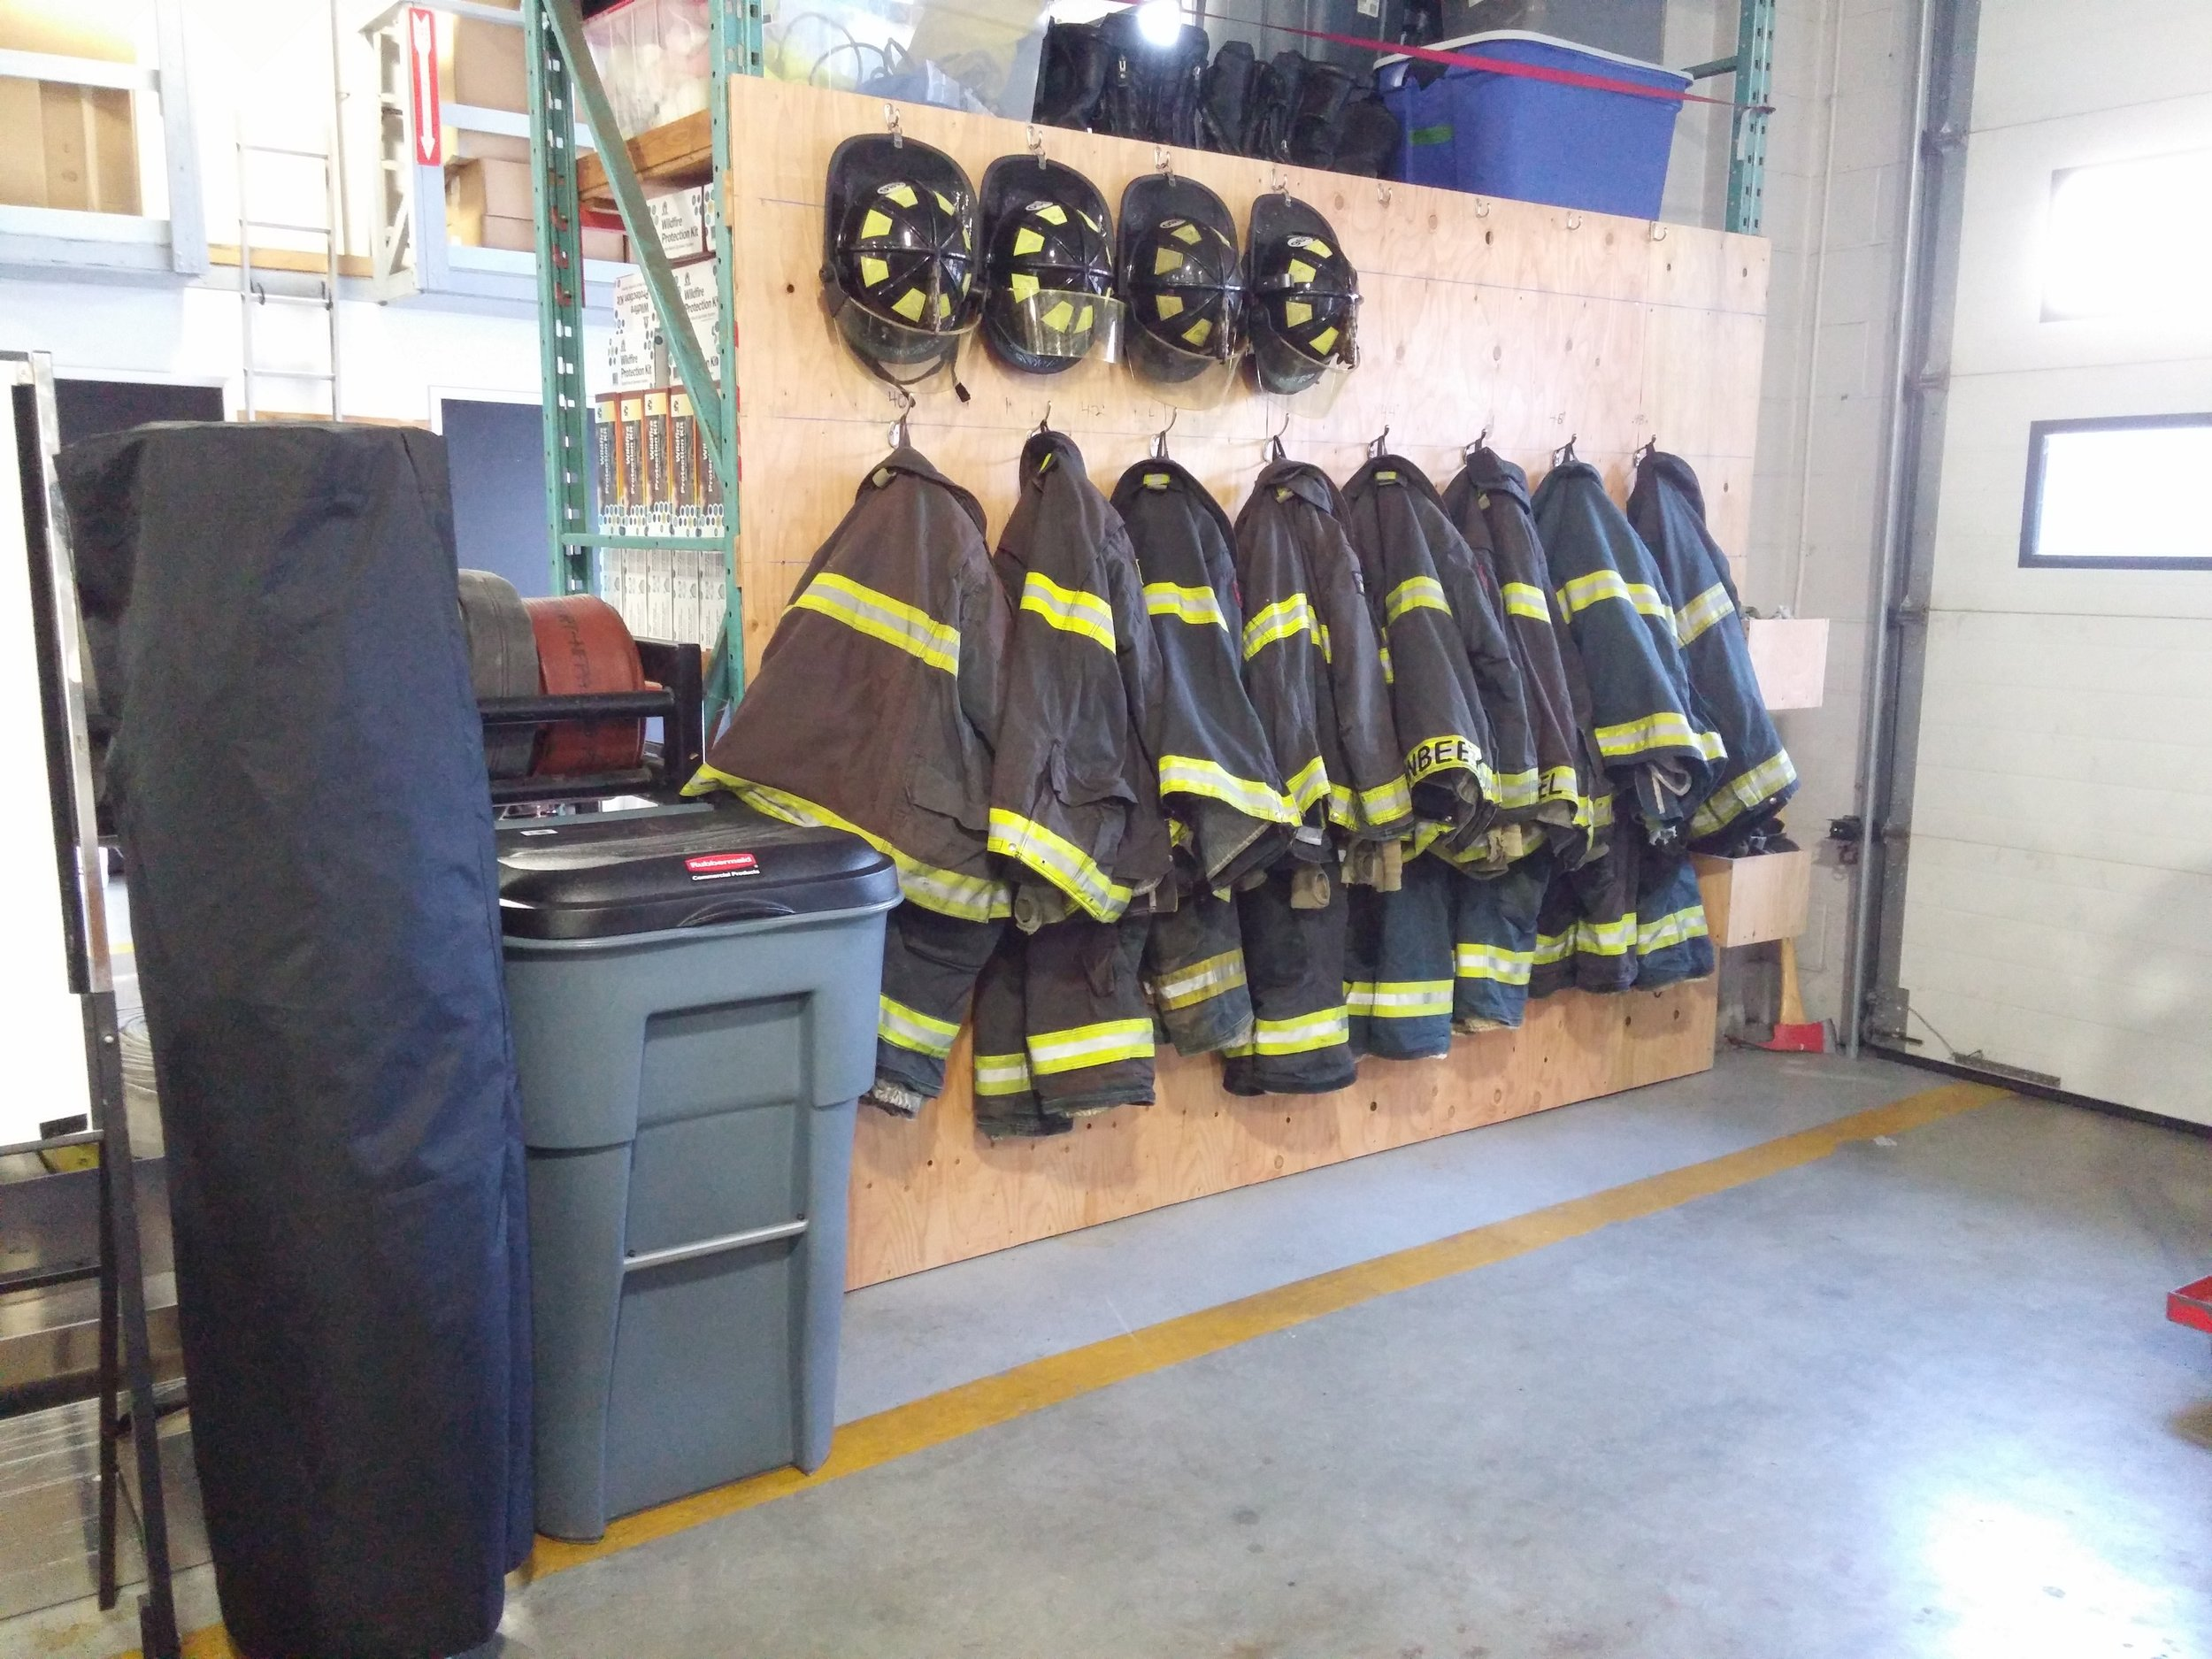 spare turnout gear cancer prevention